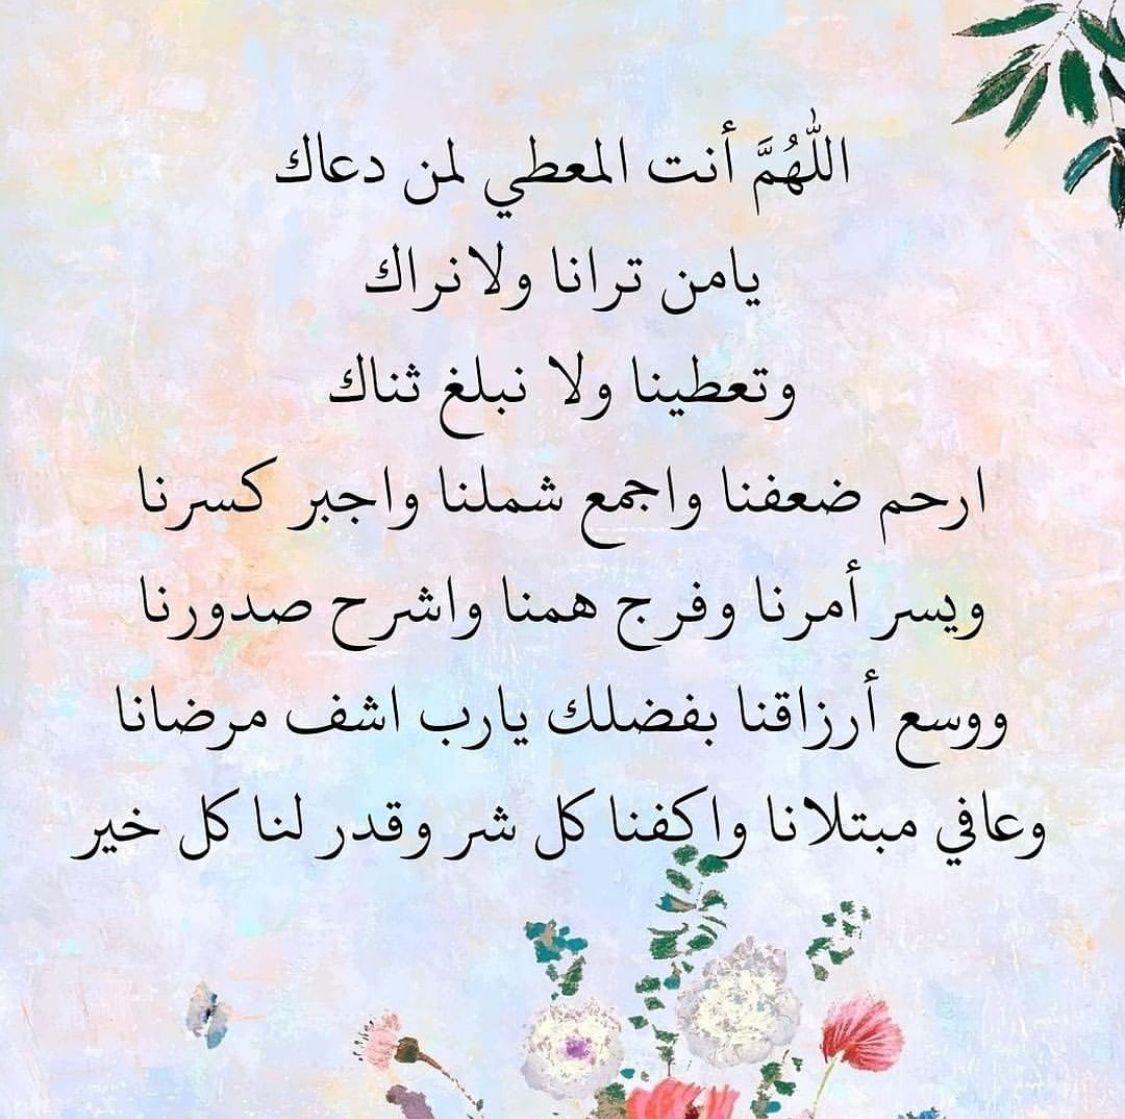 Pin By صورة و كلمة On Duea دعاء Islamic Pictures Duaa Islam Aesthetic Iphone Wallpaper